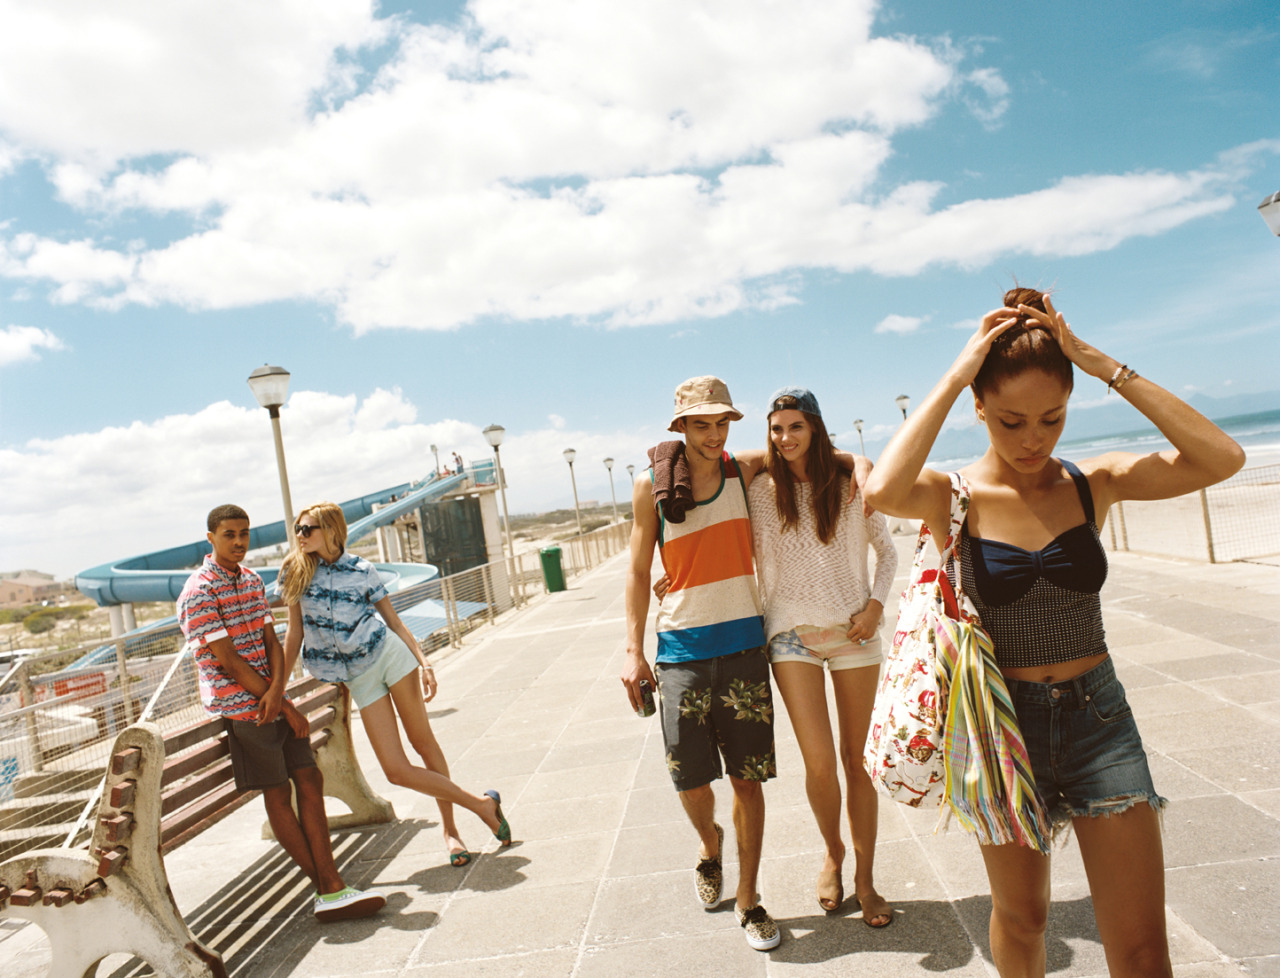 urbanoutfitters:  The Summer Catalog: Here Comes The Sun Photography by Rene Vaile